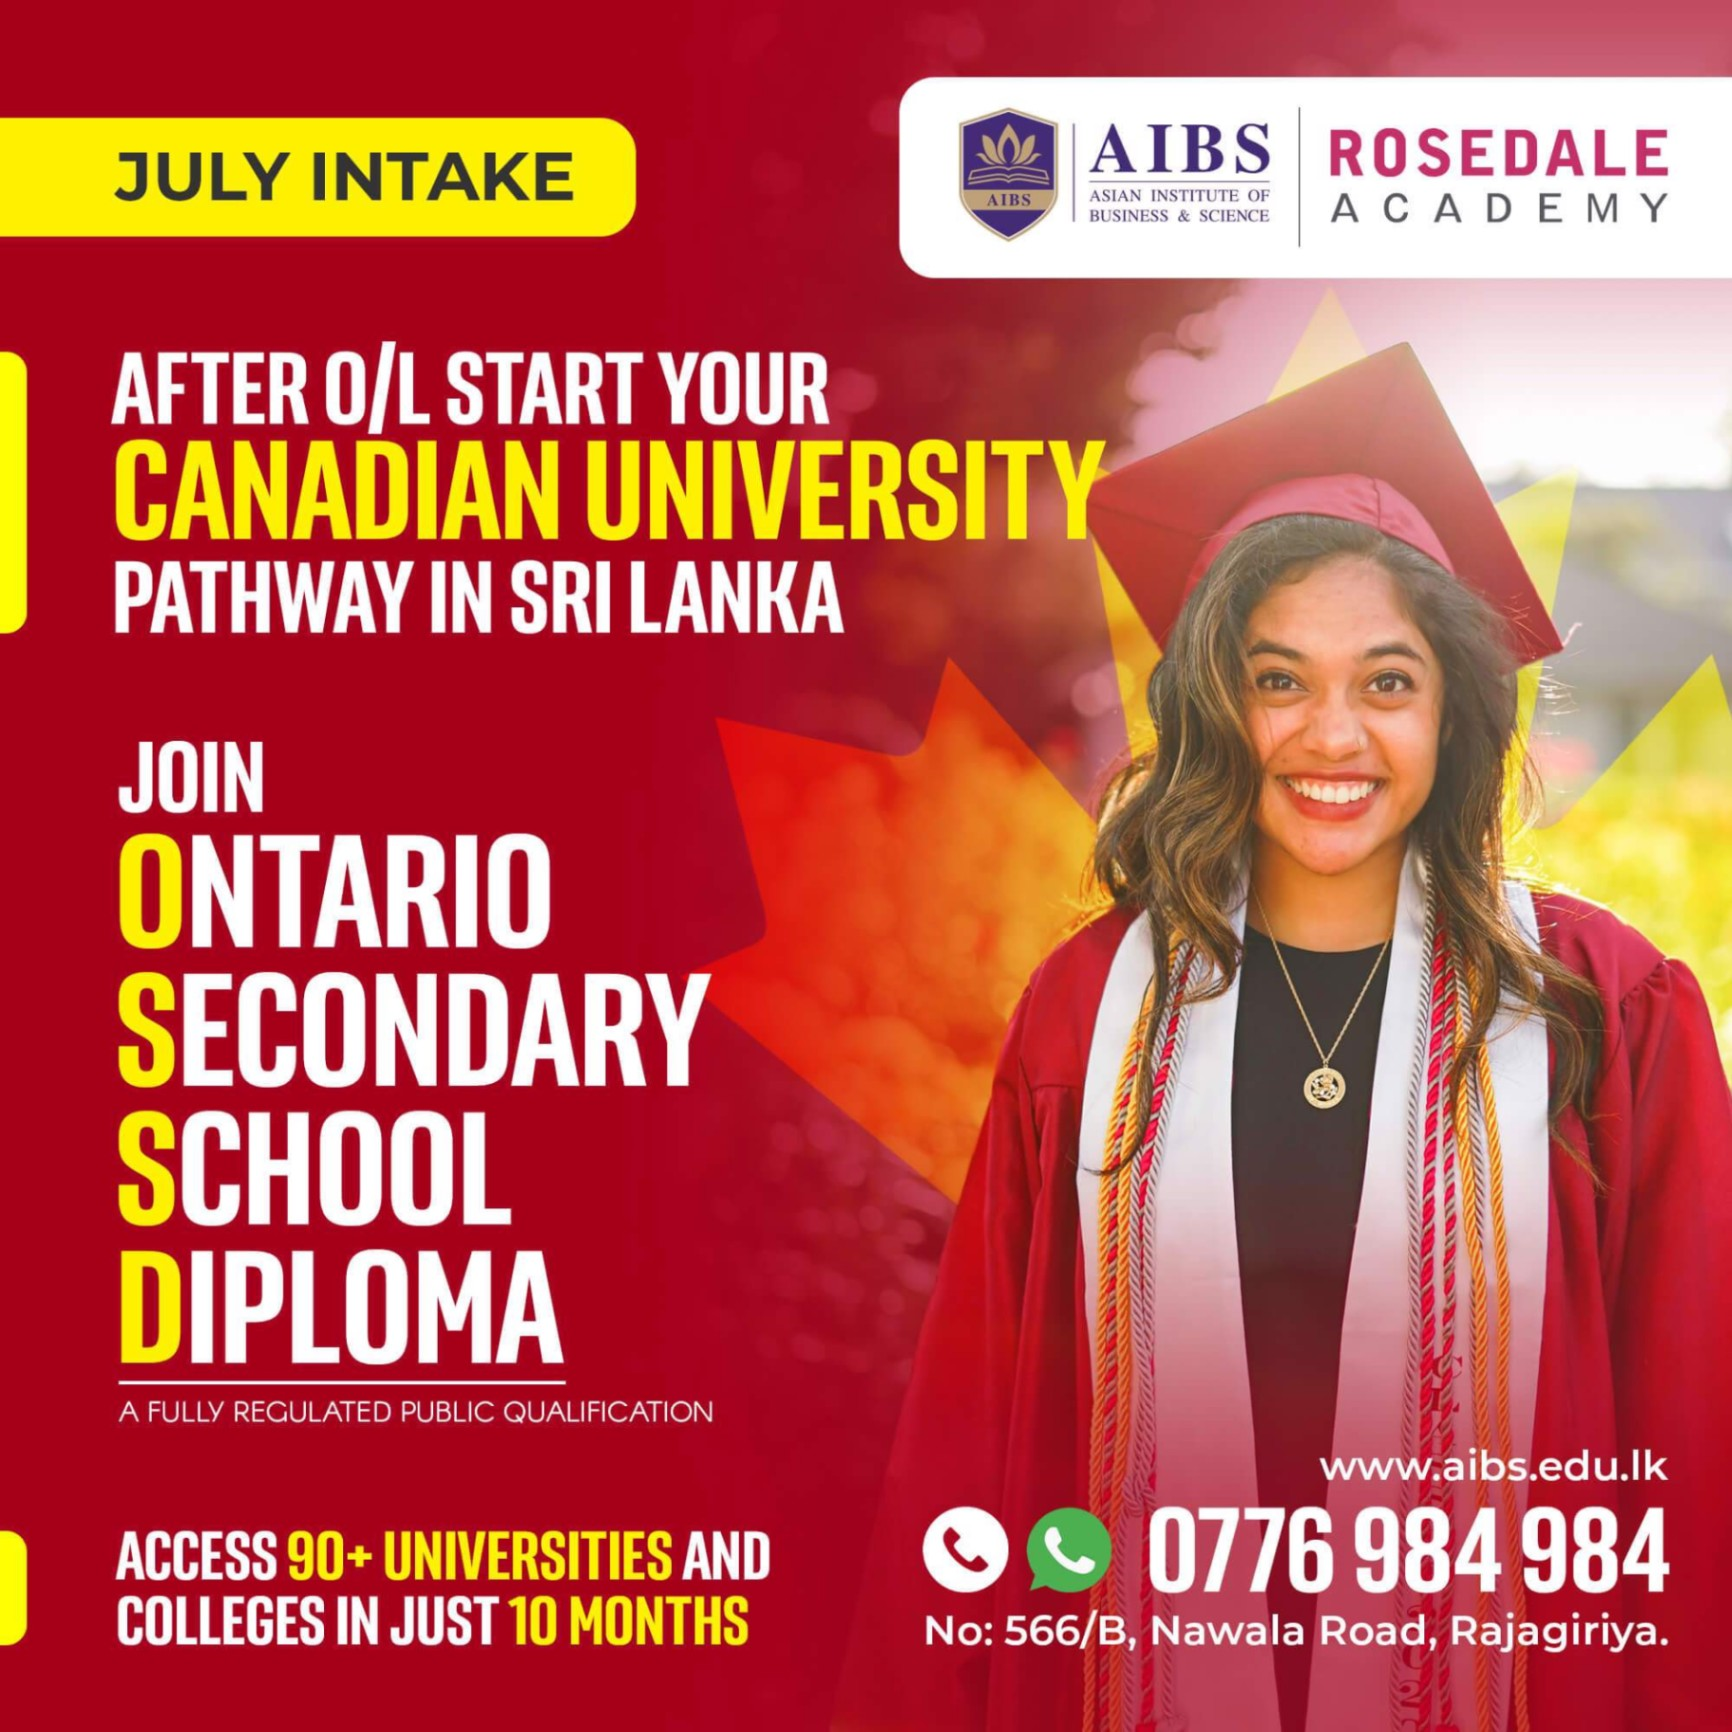 Reach Canada for bachelors with a Canadian qualification. Enroll now with pending OL results.